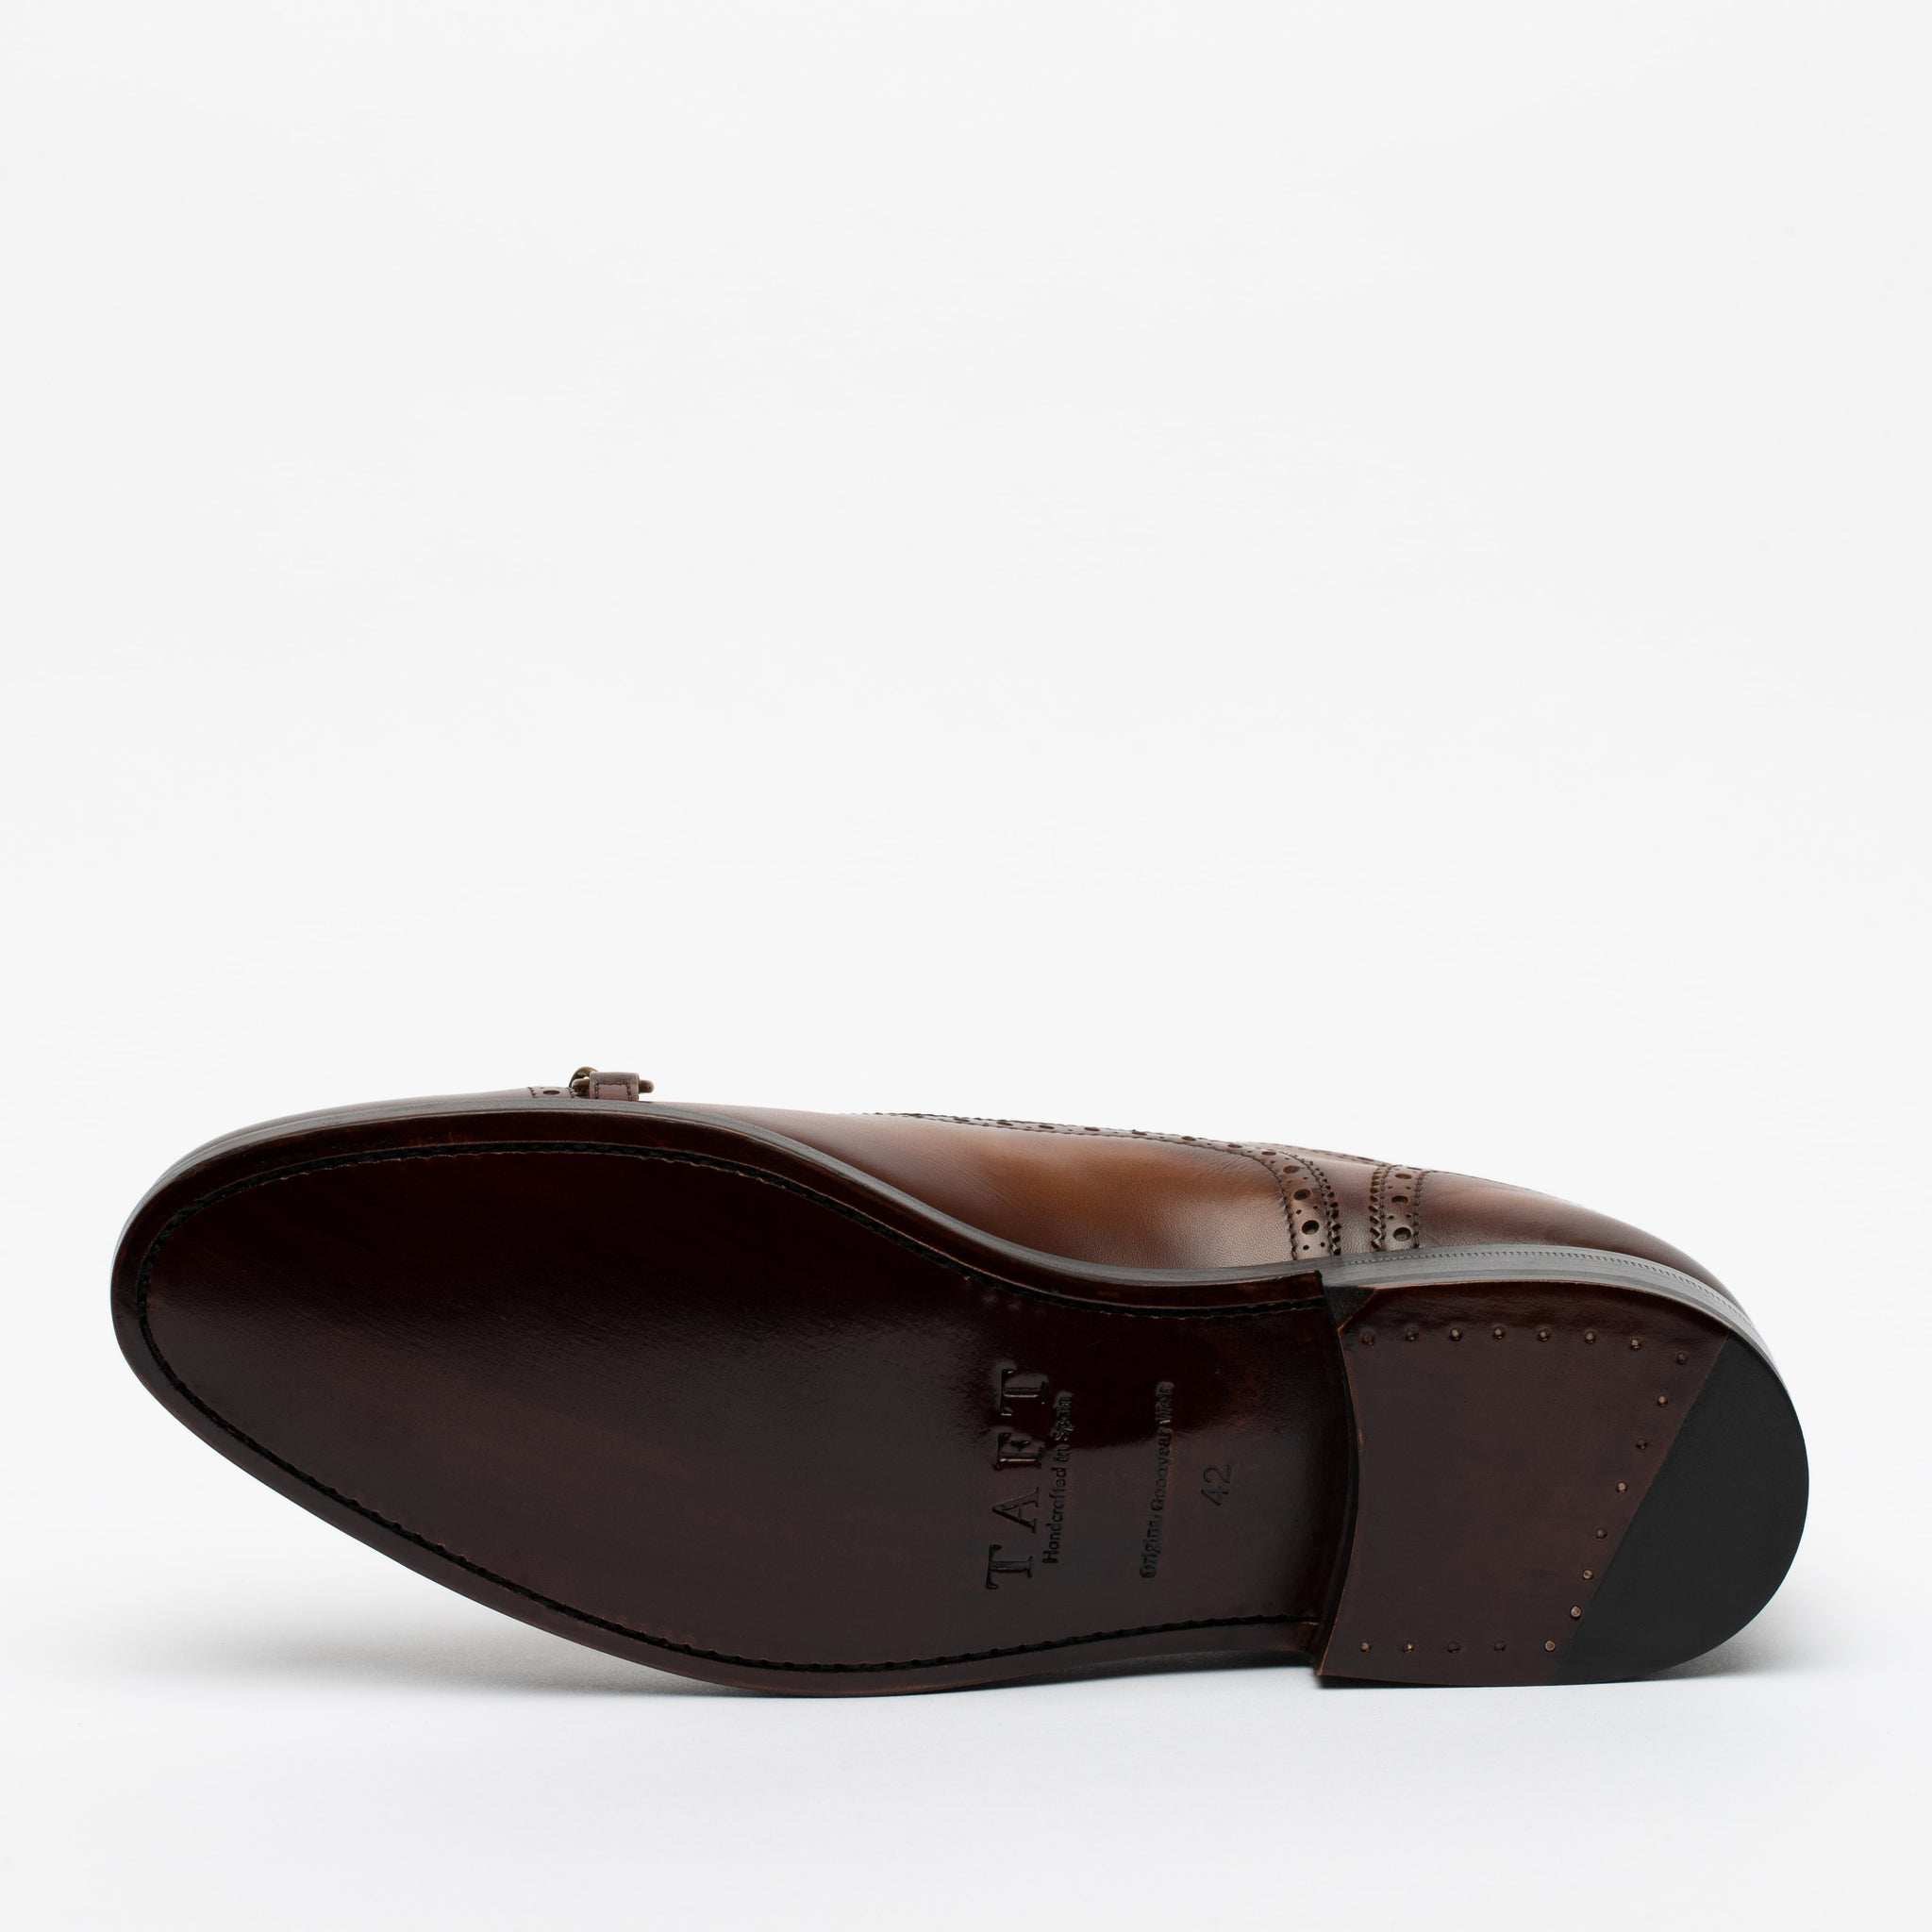 The Grail Shoe in Coffee Bottom Sole